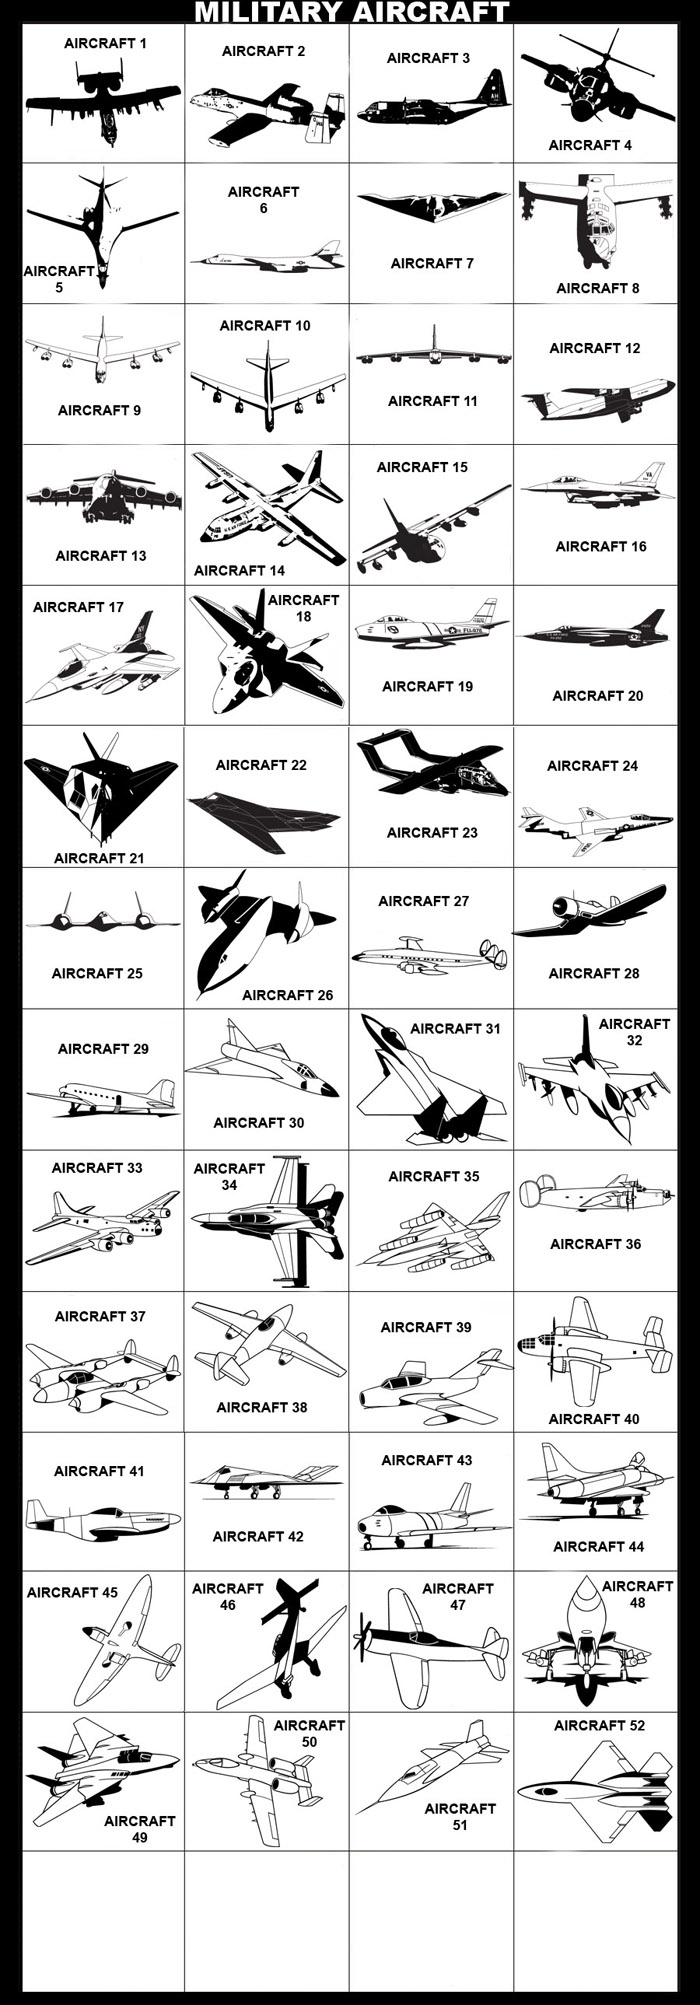 Air Force, A-10, AC-130H, B-1, B-2A, B-52, B-5A, C-17, C-130, F-16, F-22. F-86F, F-105D, F-117, OV-10, RF-101, SR-71, FH-250, Plane, Jet, Airplane, Aviation